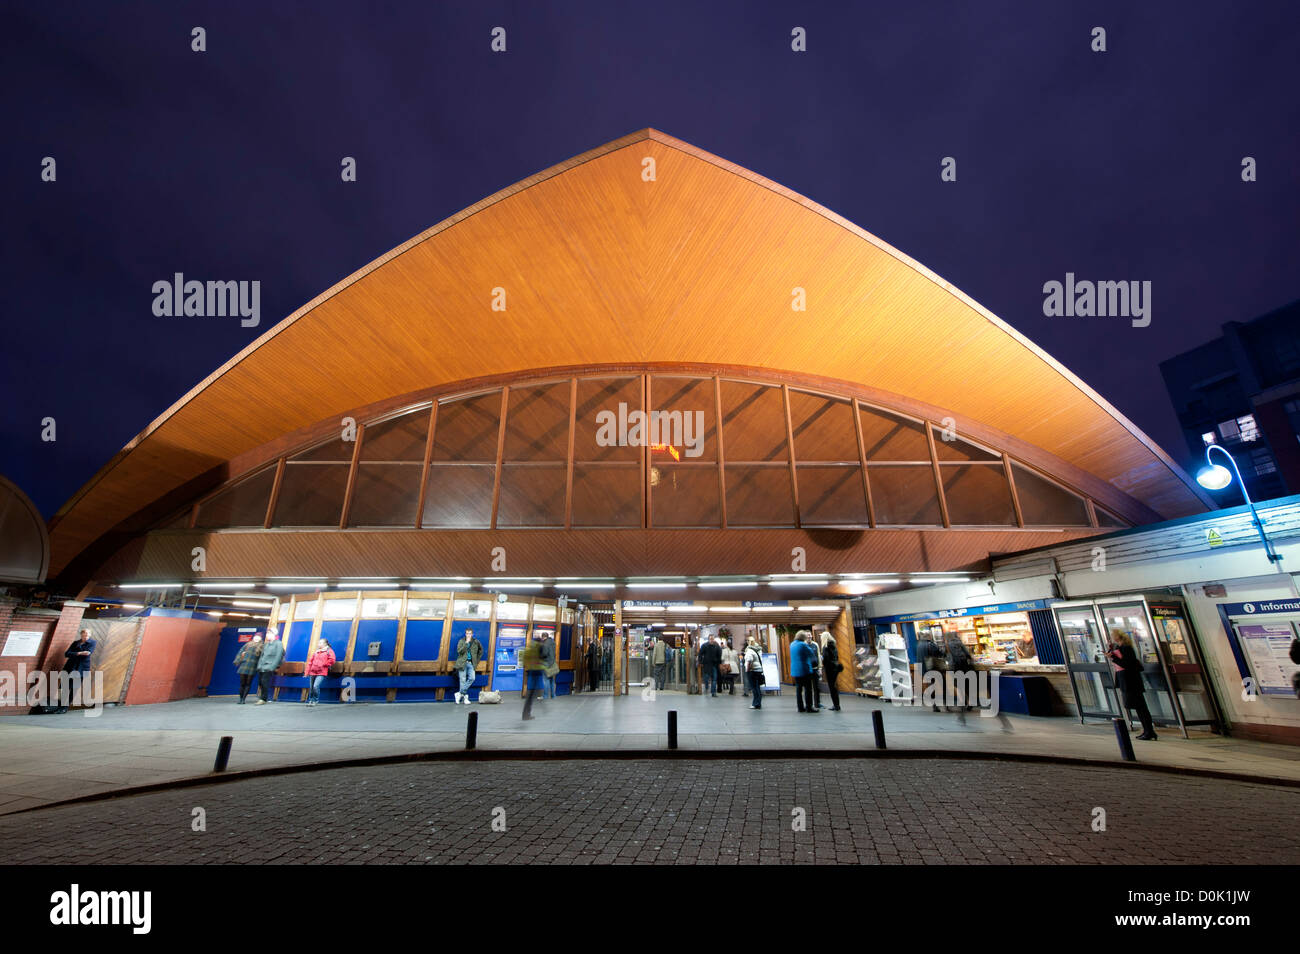 Oxford Road railway station in Manchester. - Stock Image